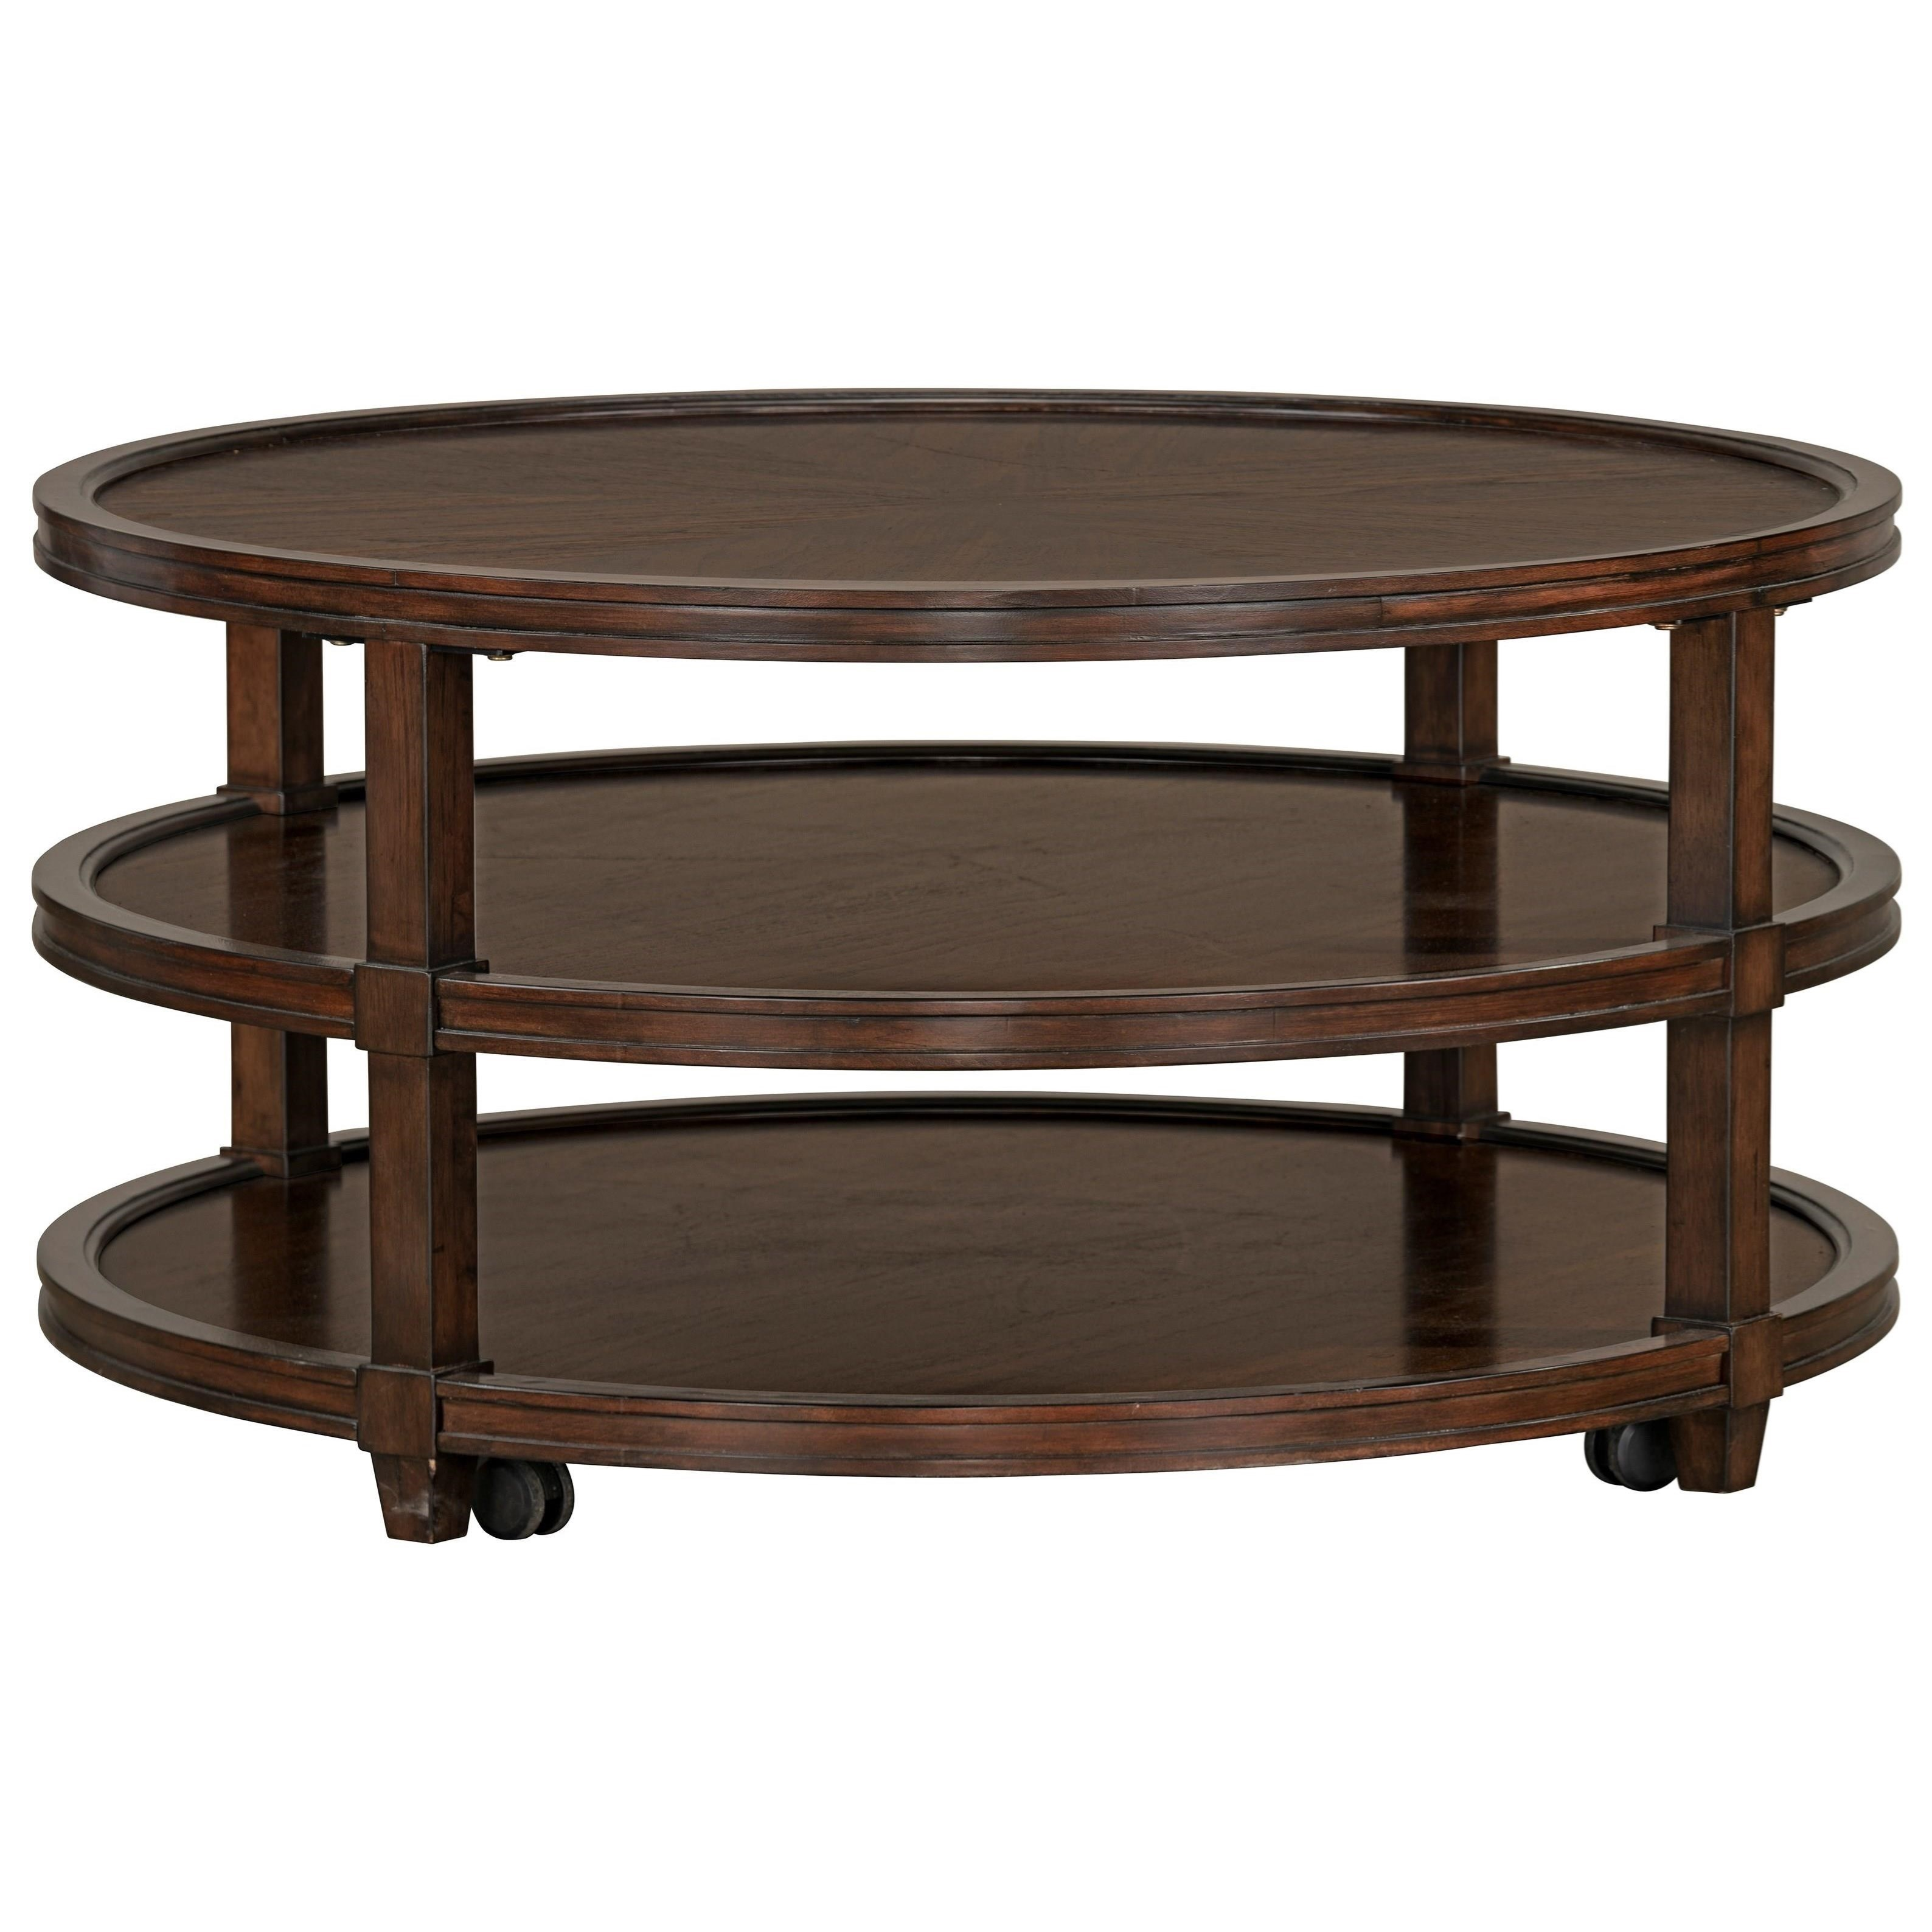 Cocktail Table W/Casters